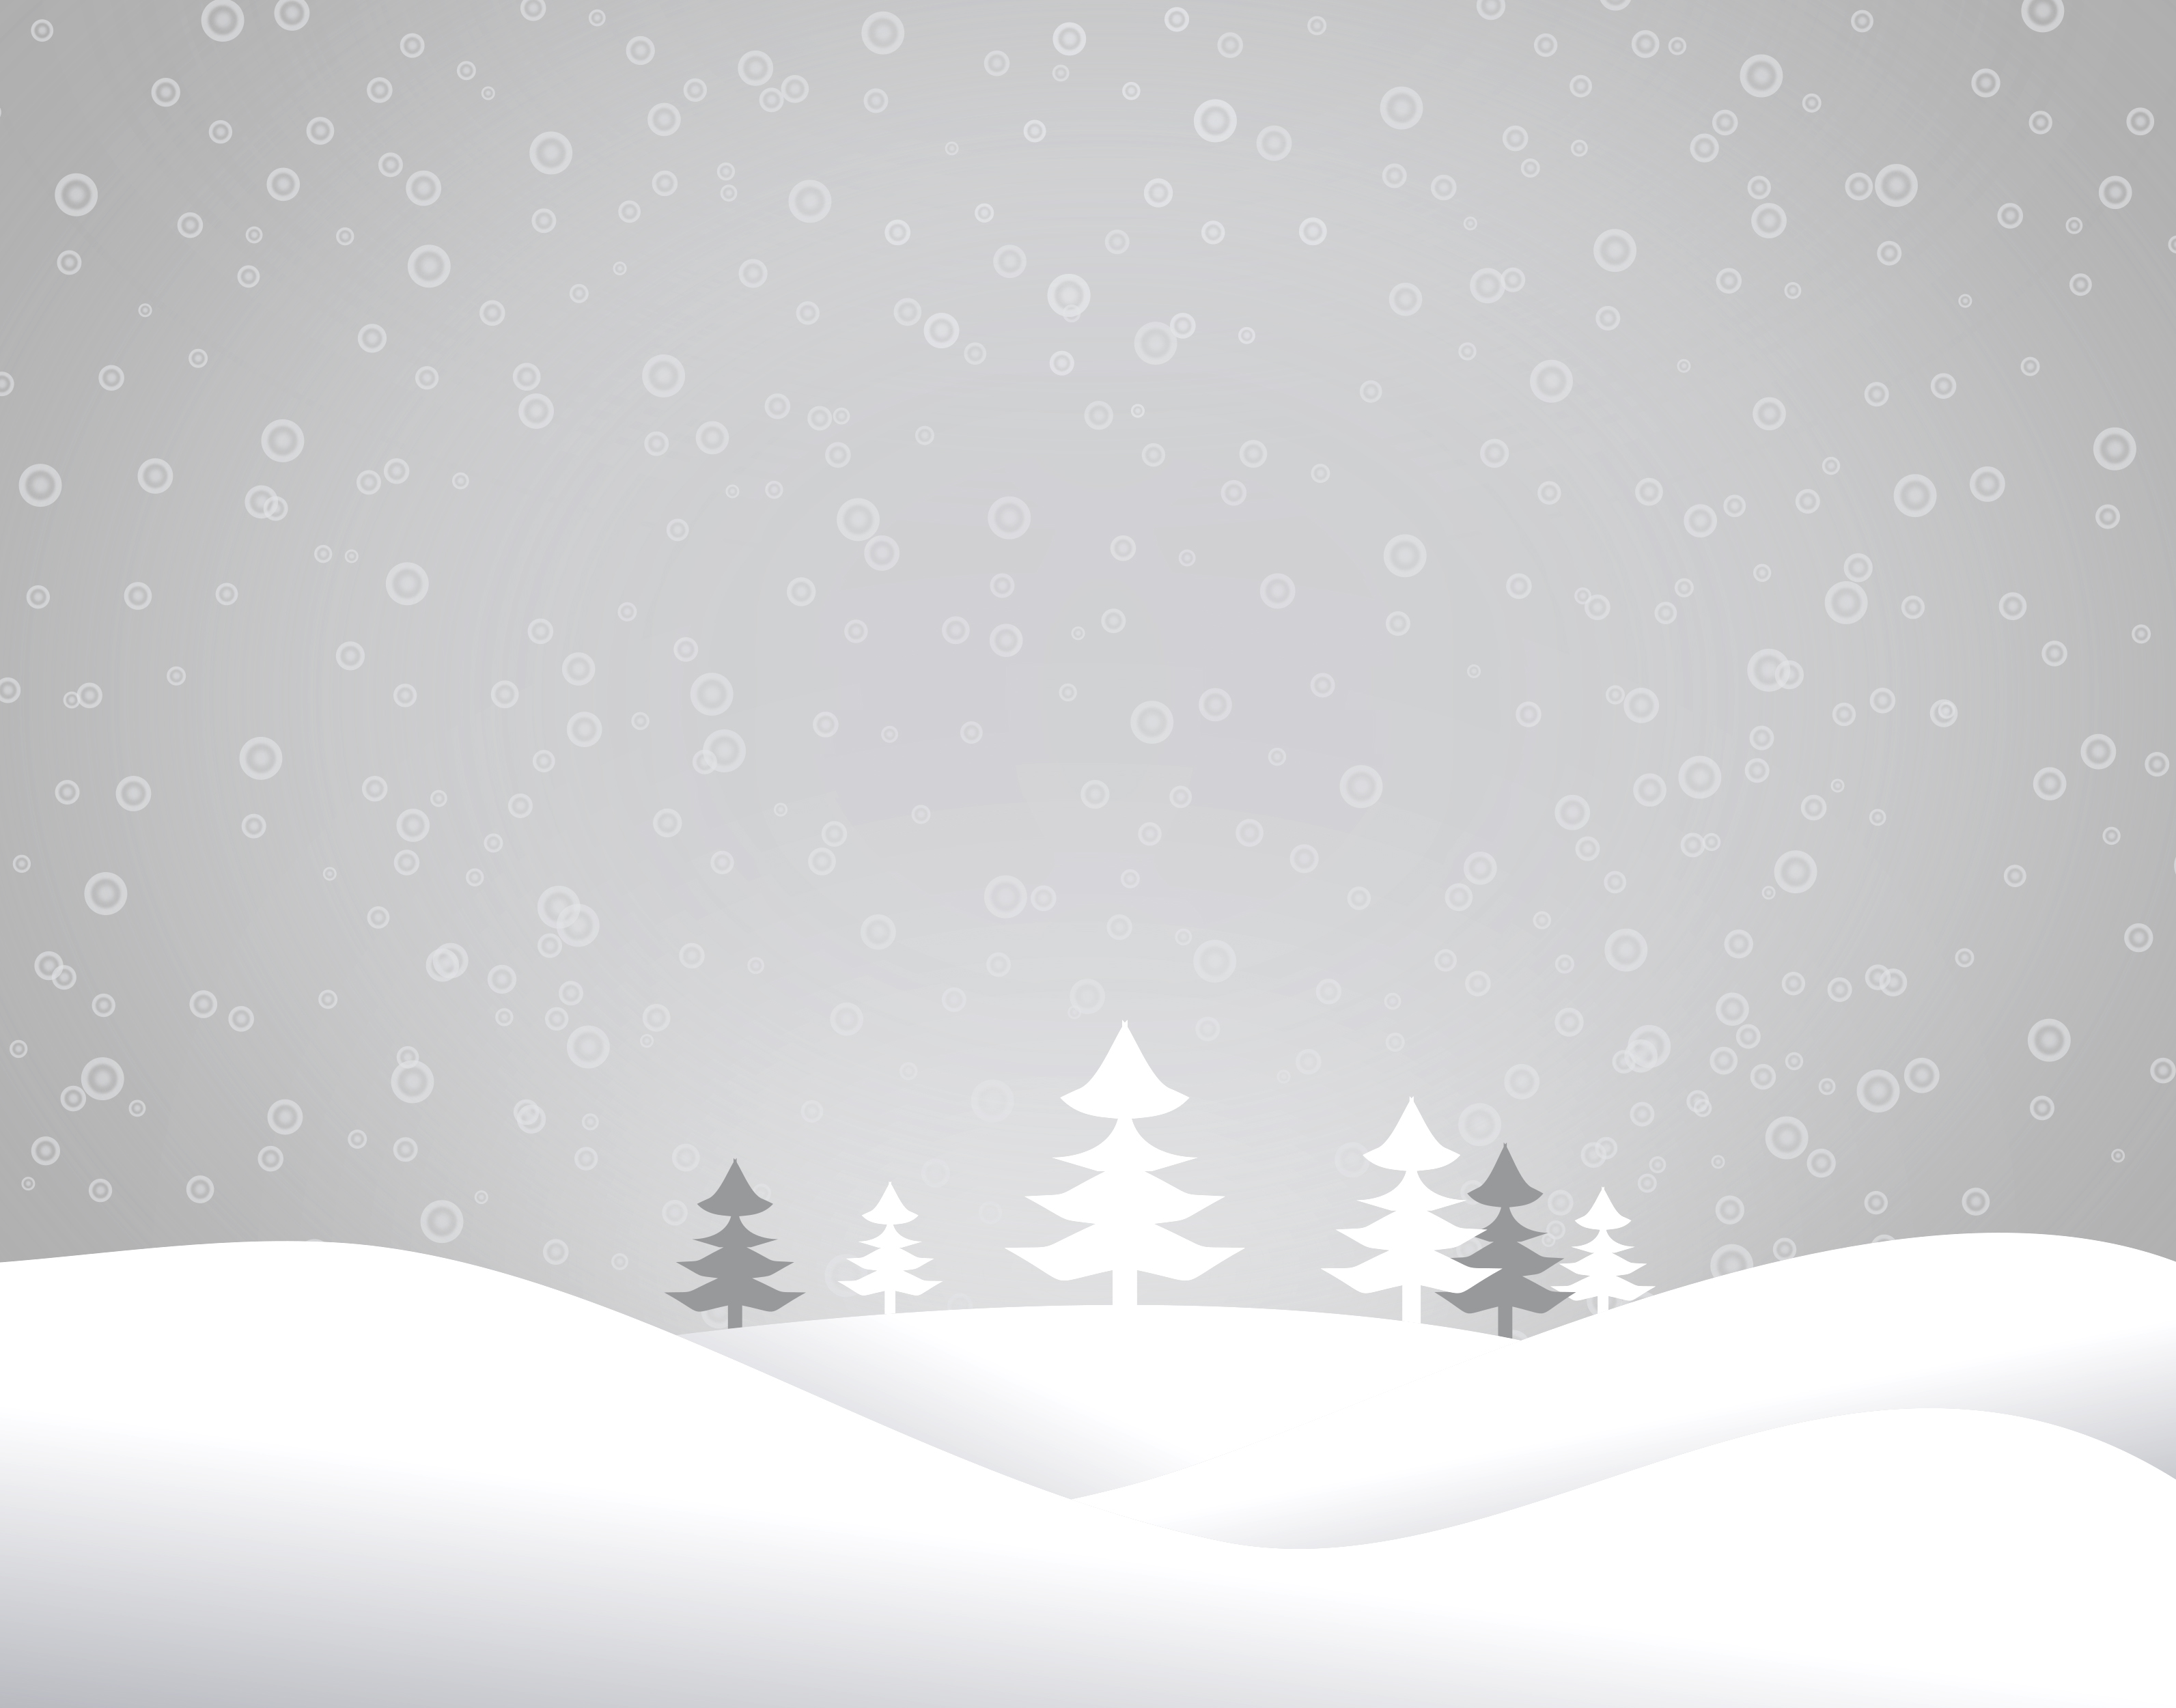 Christmas snowy landscape - xmas postcard with copyspace photo